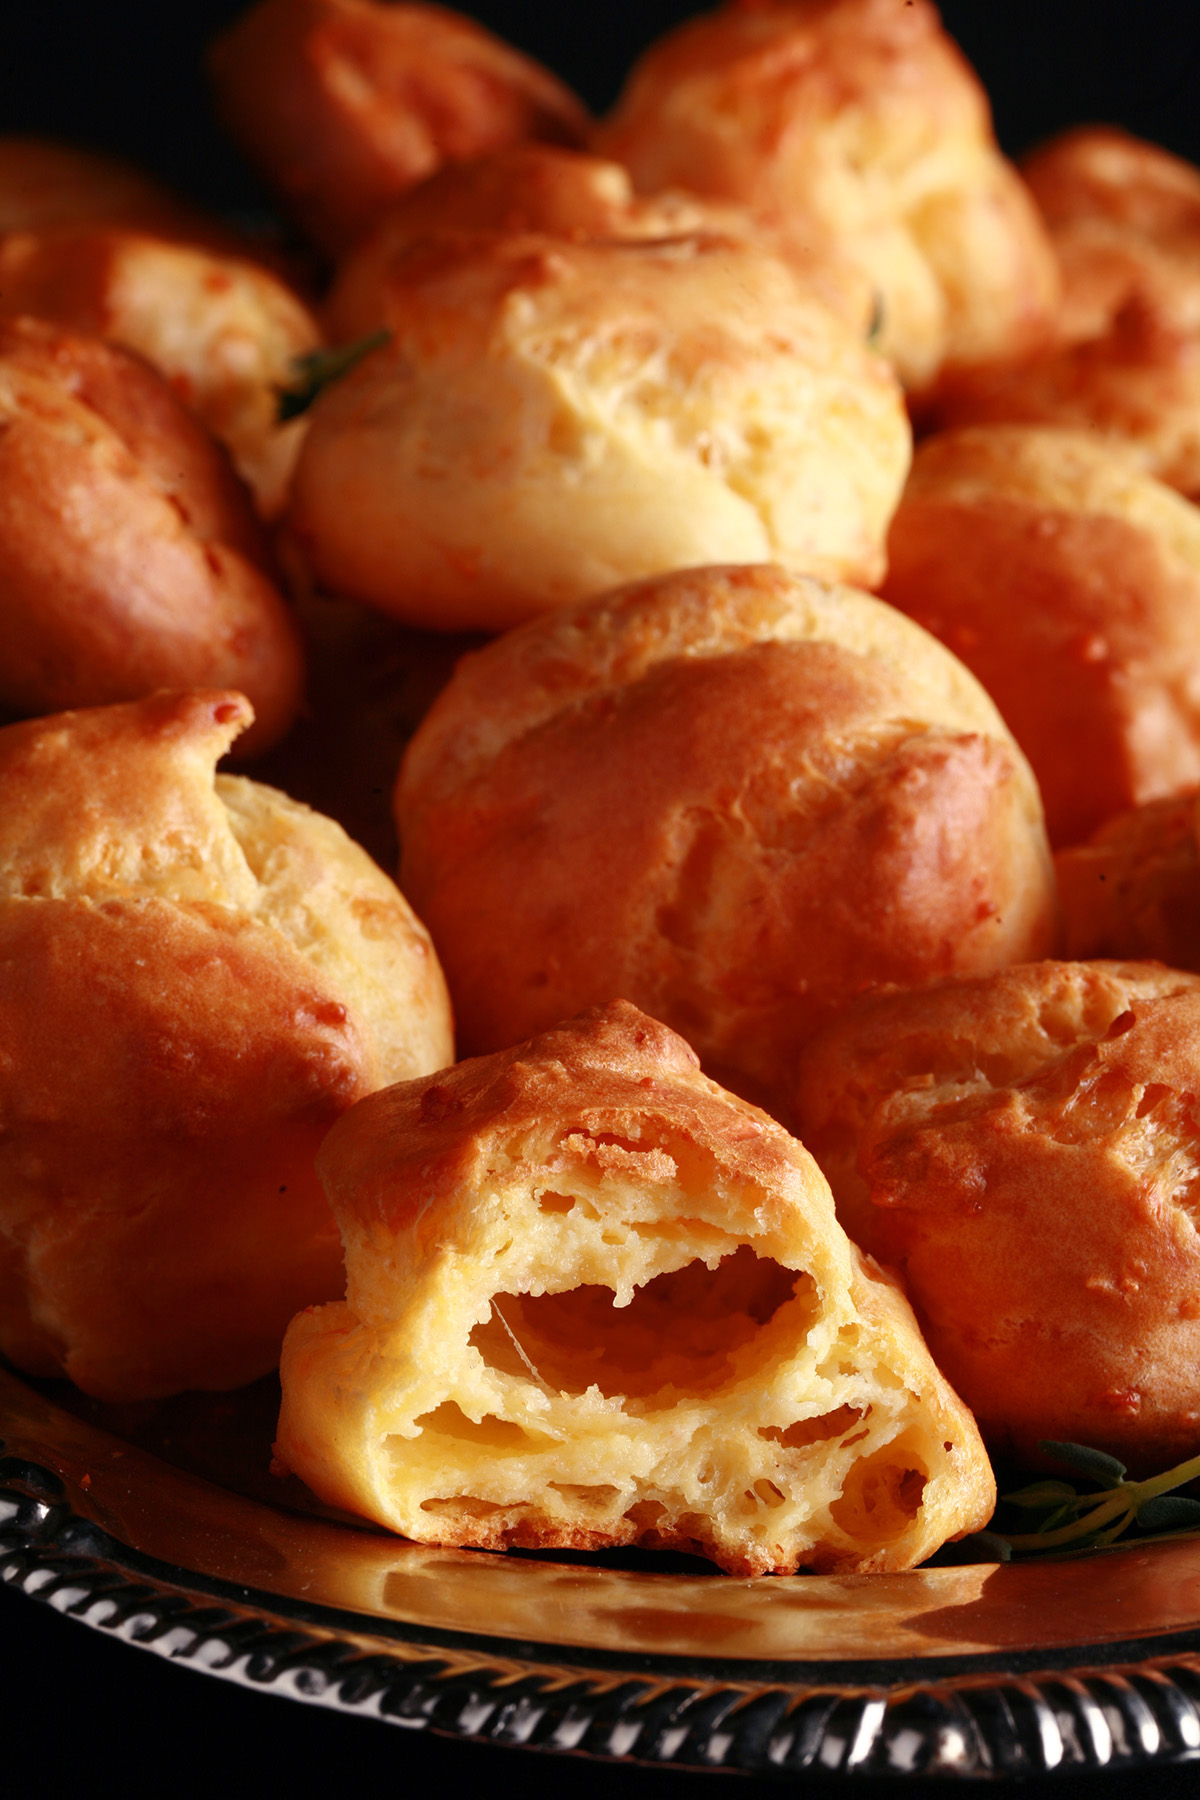 A large pile of Gluten-free Gougères - small, cheesy pastries - on a silver plate.